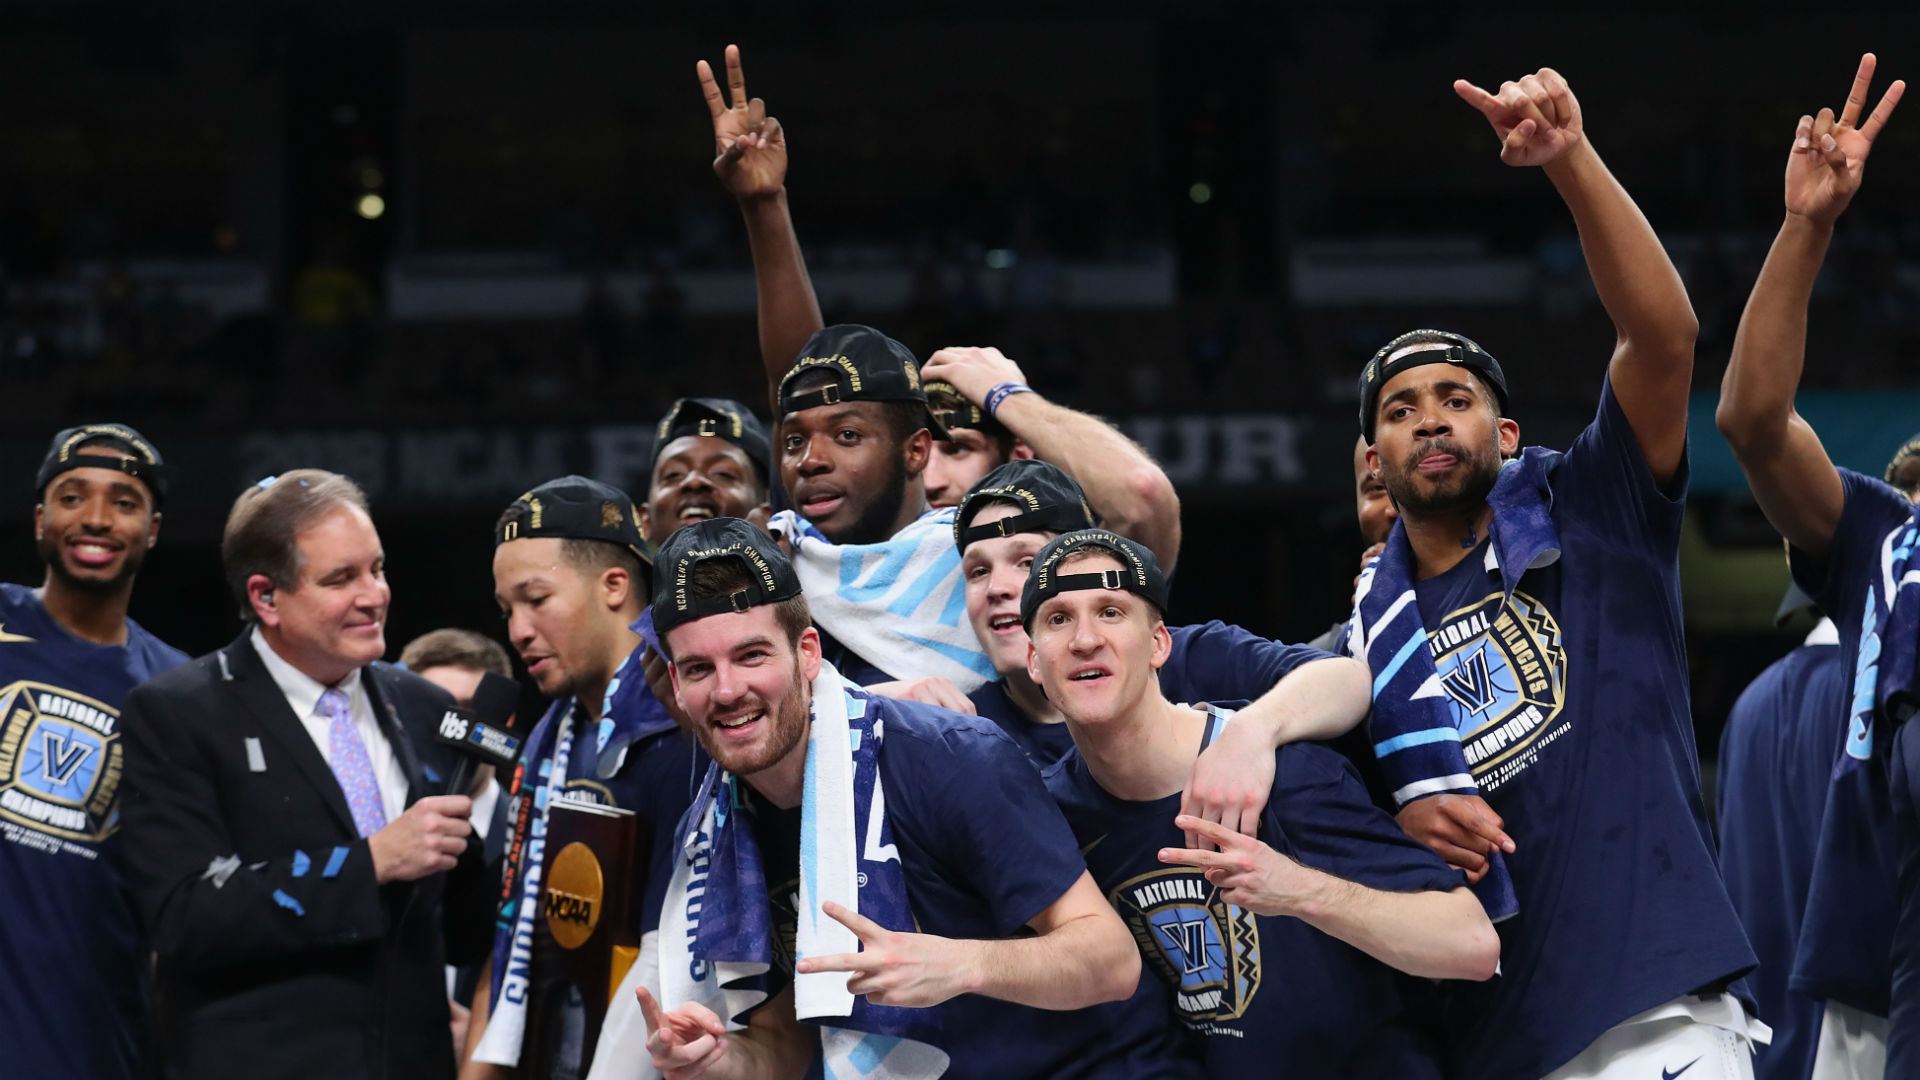 Watch the 2018 Edition of March Madness's 'One Shining Moment'